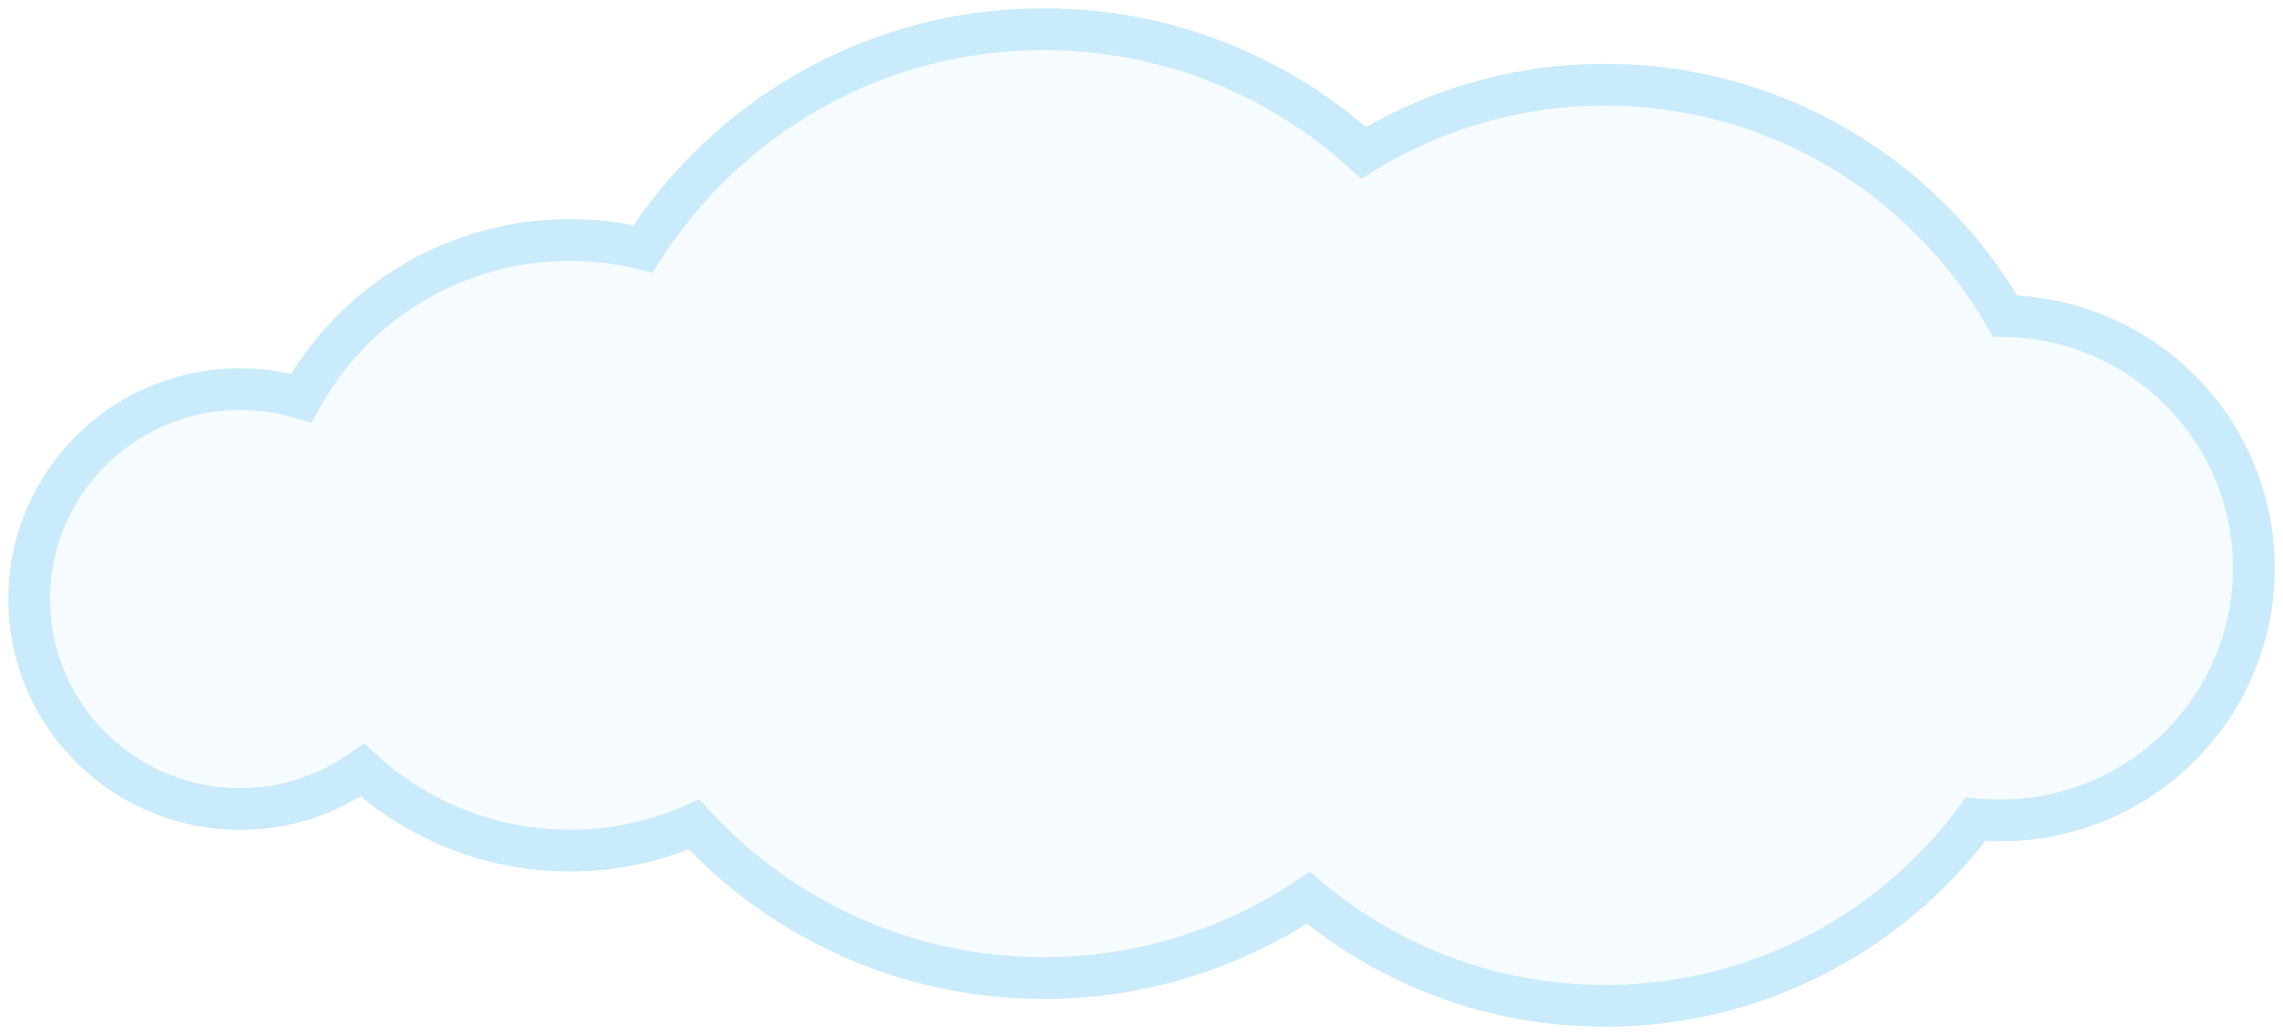 Something fishy resources images. Cloud vector png